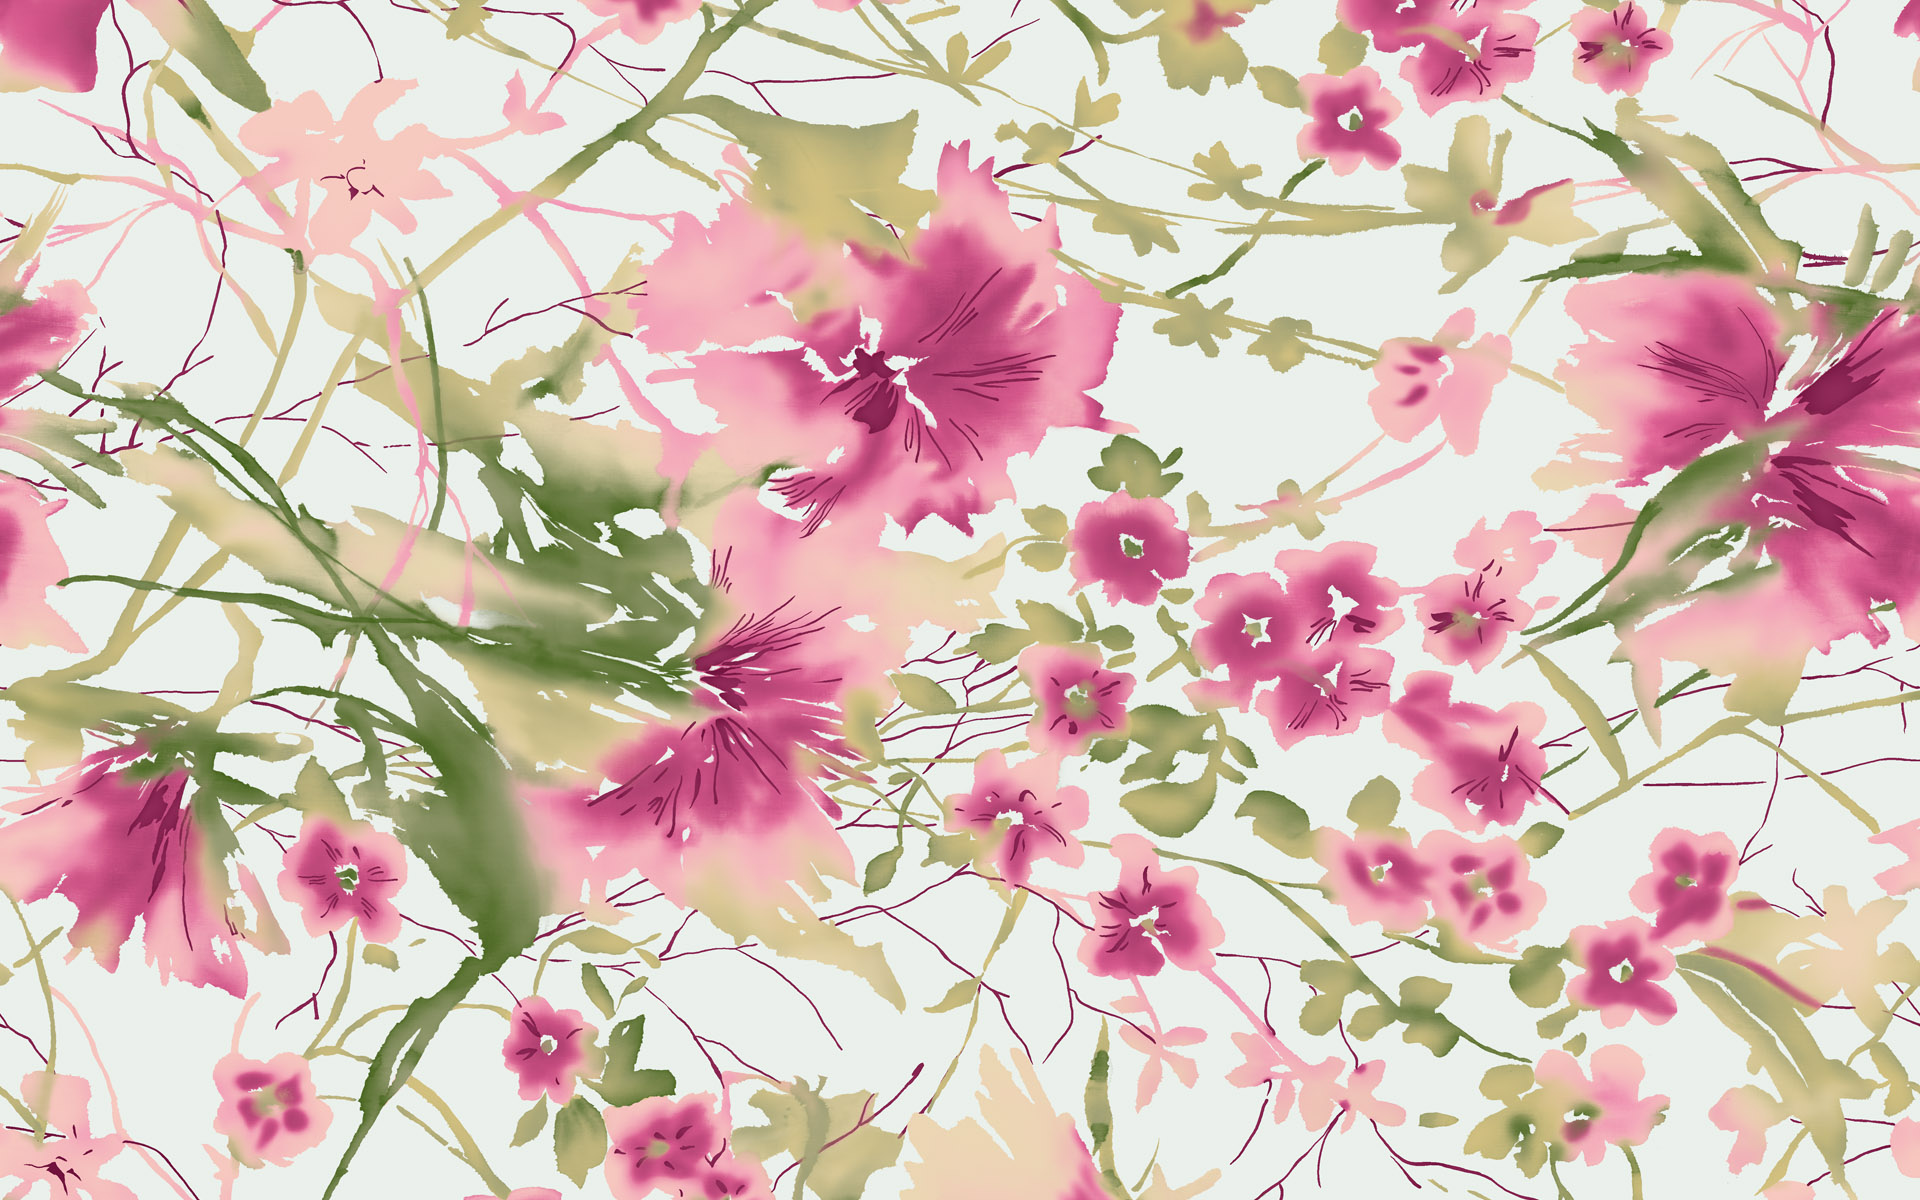 Background wallpaper pattern pattern 5025